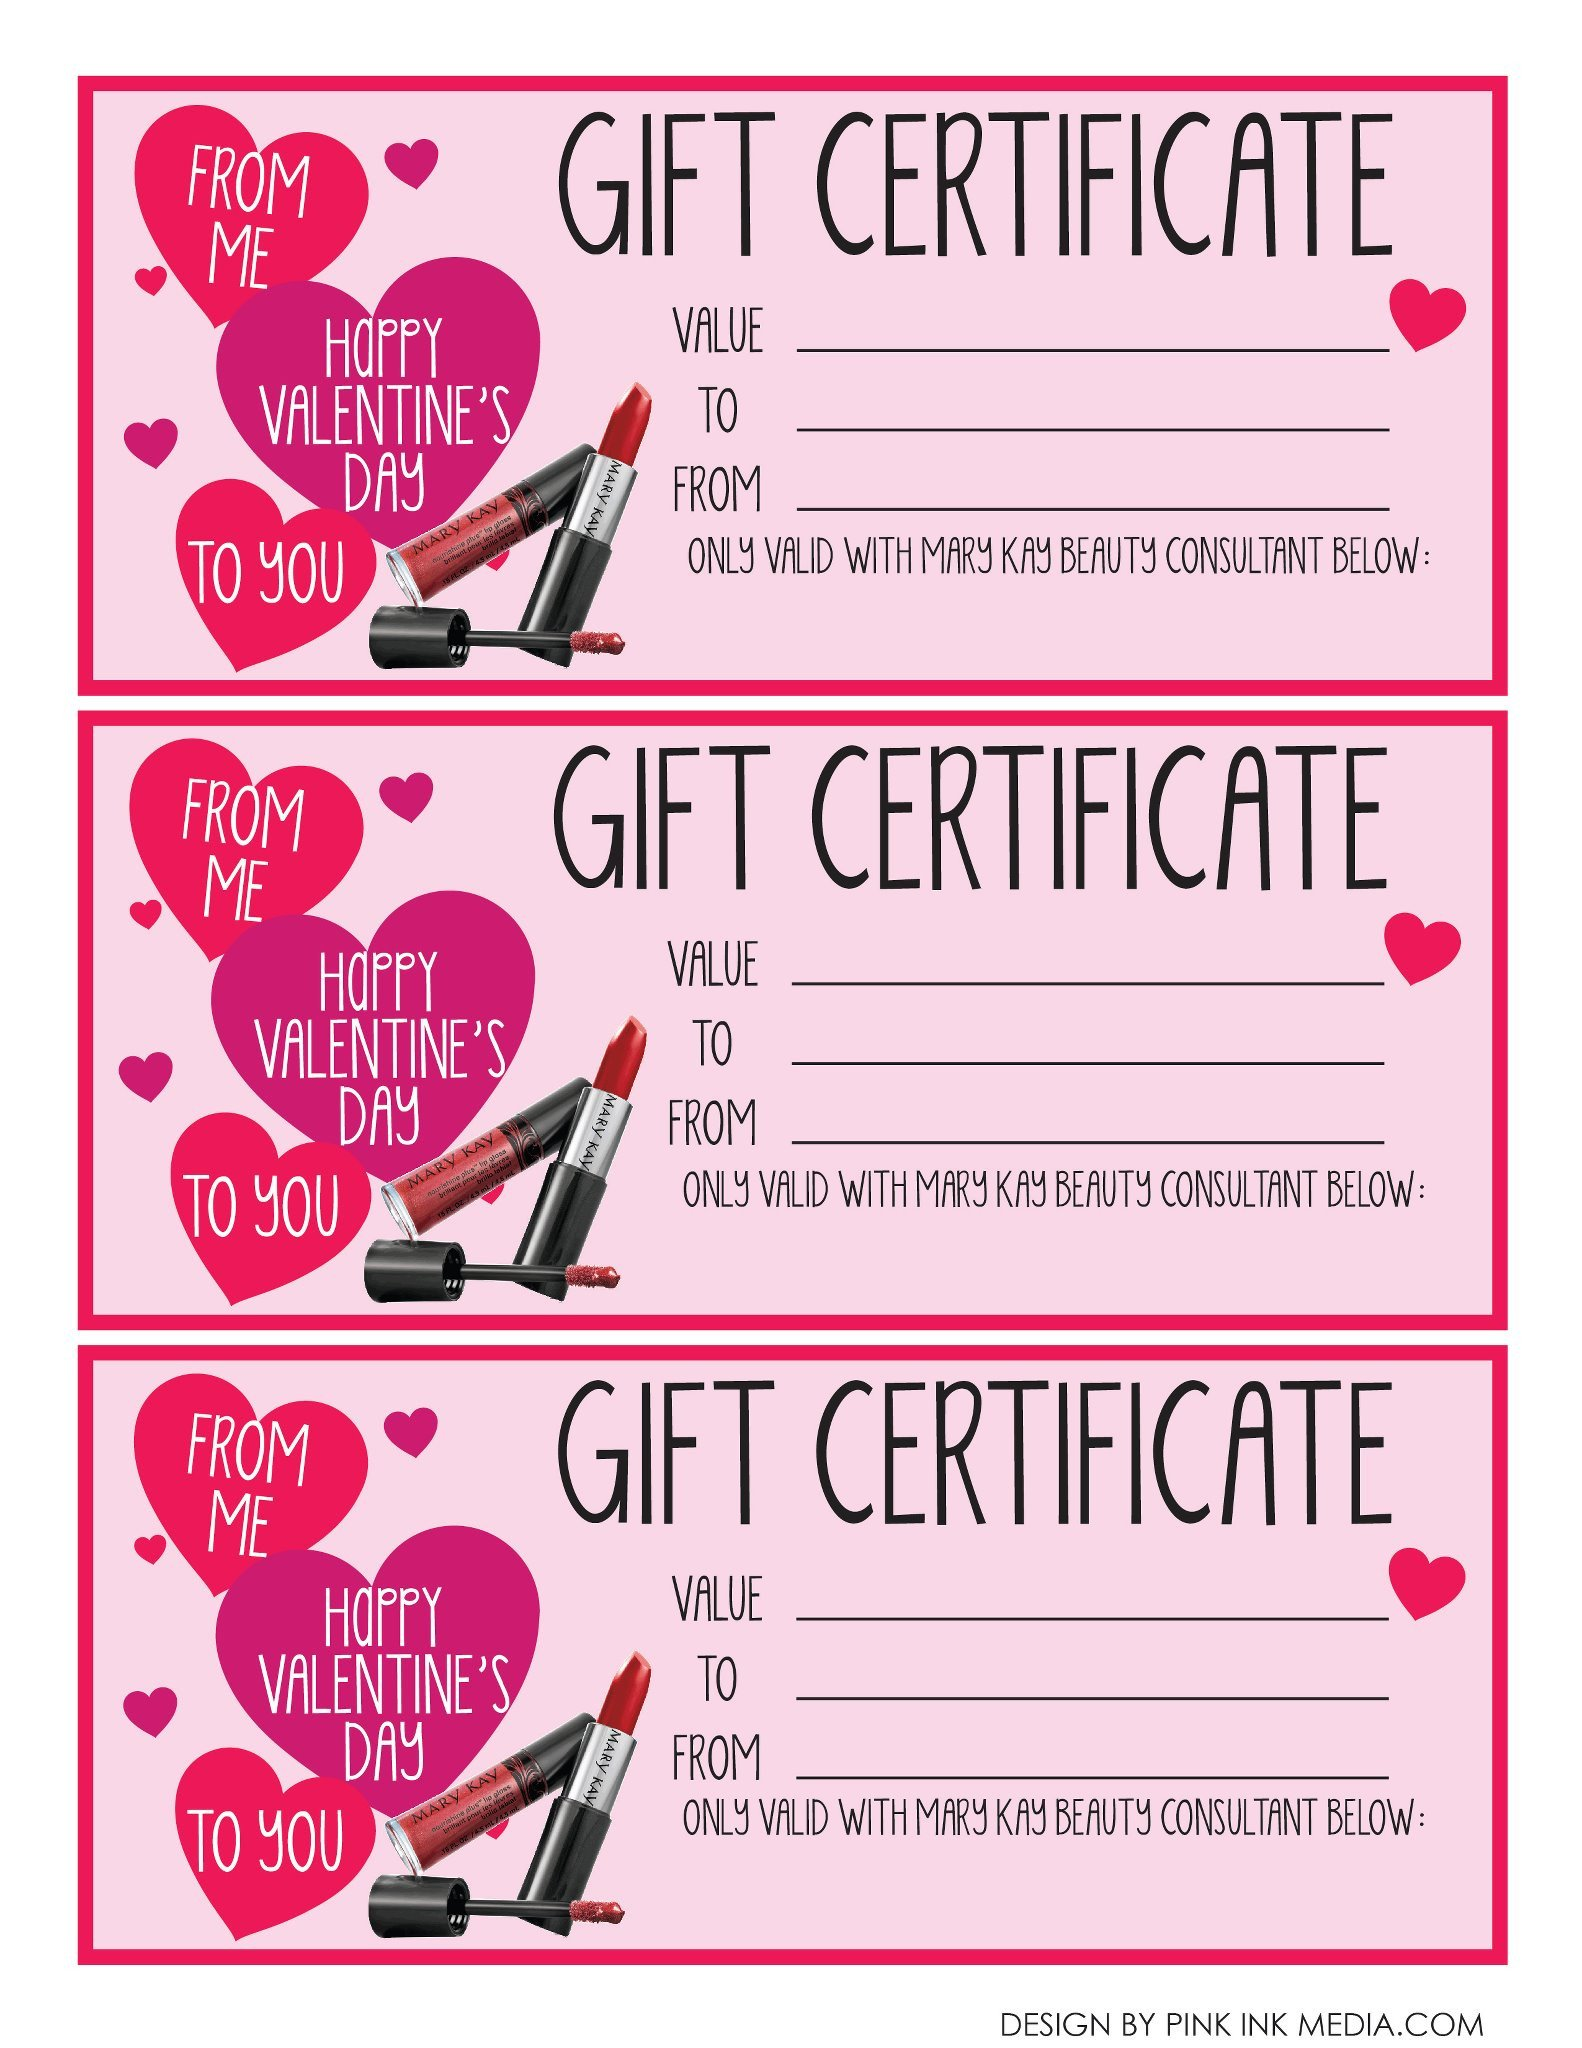 Mary Kay Gift Certificates Pdf Education – Virnau S Victors